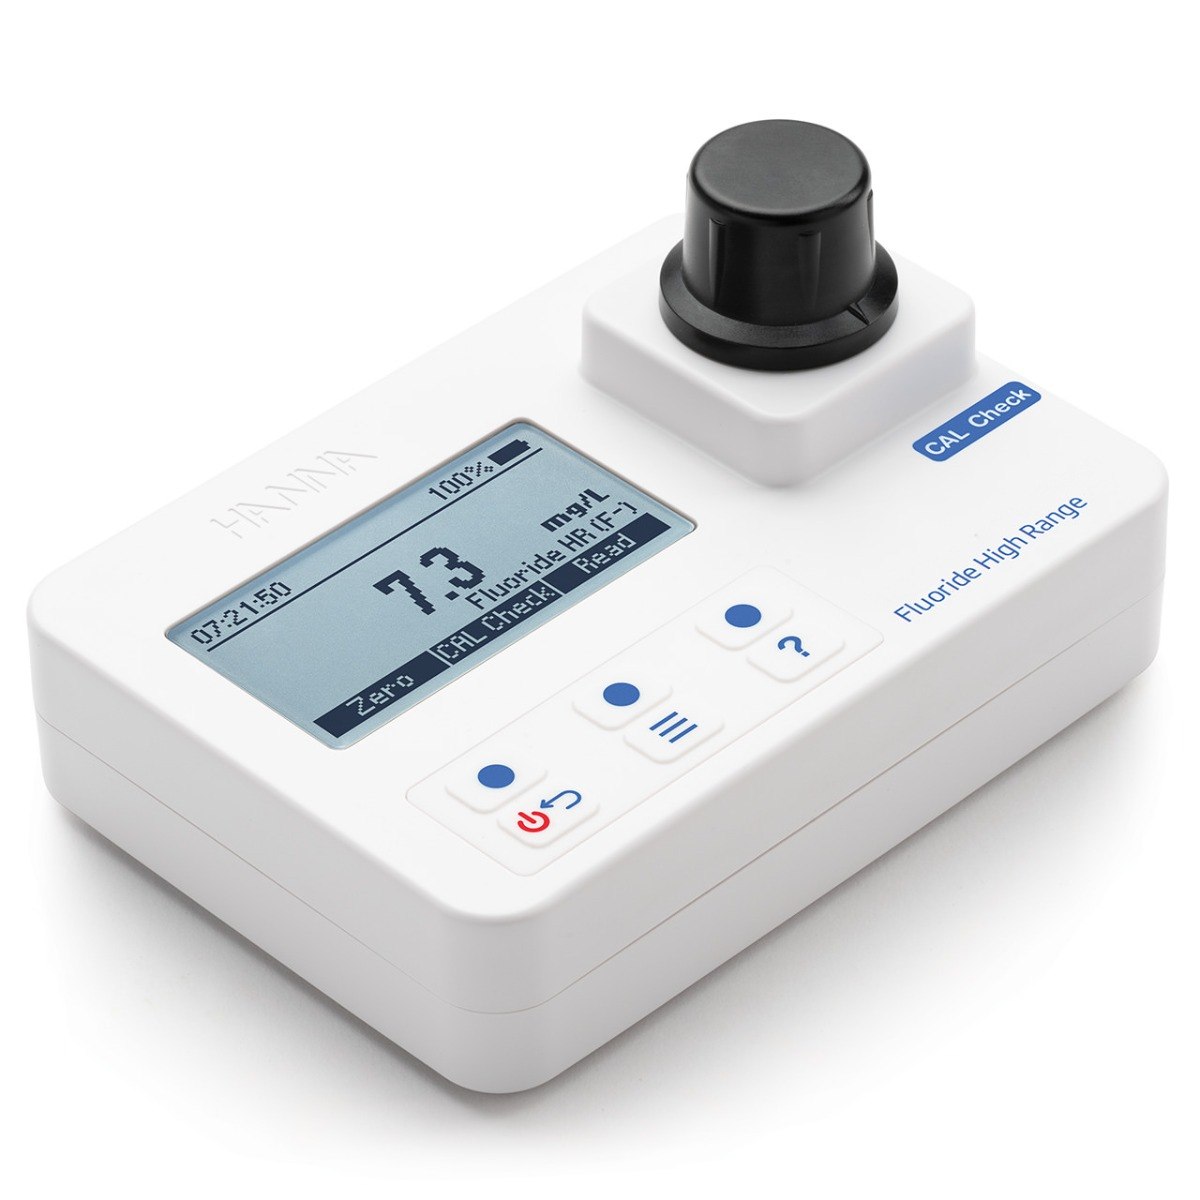 Fluoride High-Range Portable Photometer with CAL Check – HI97739